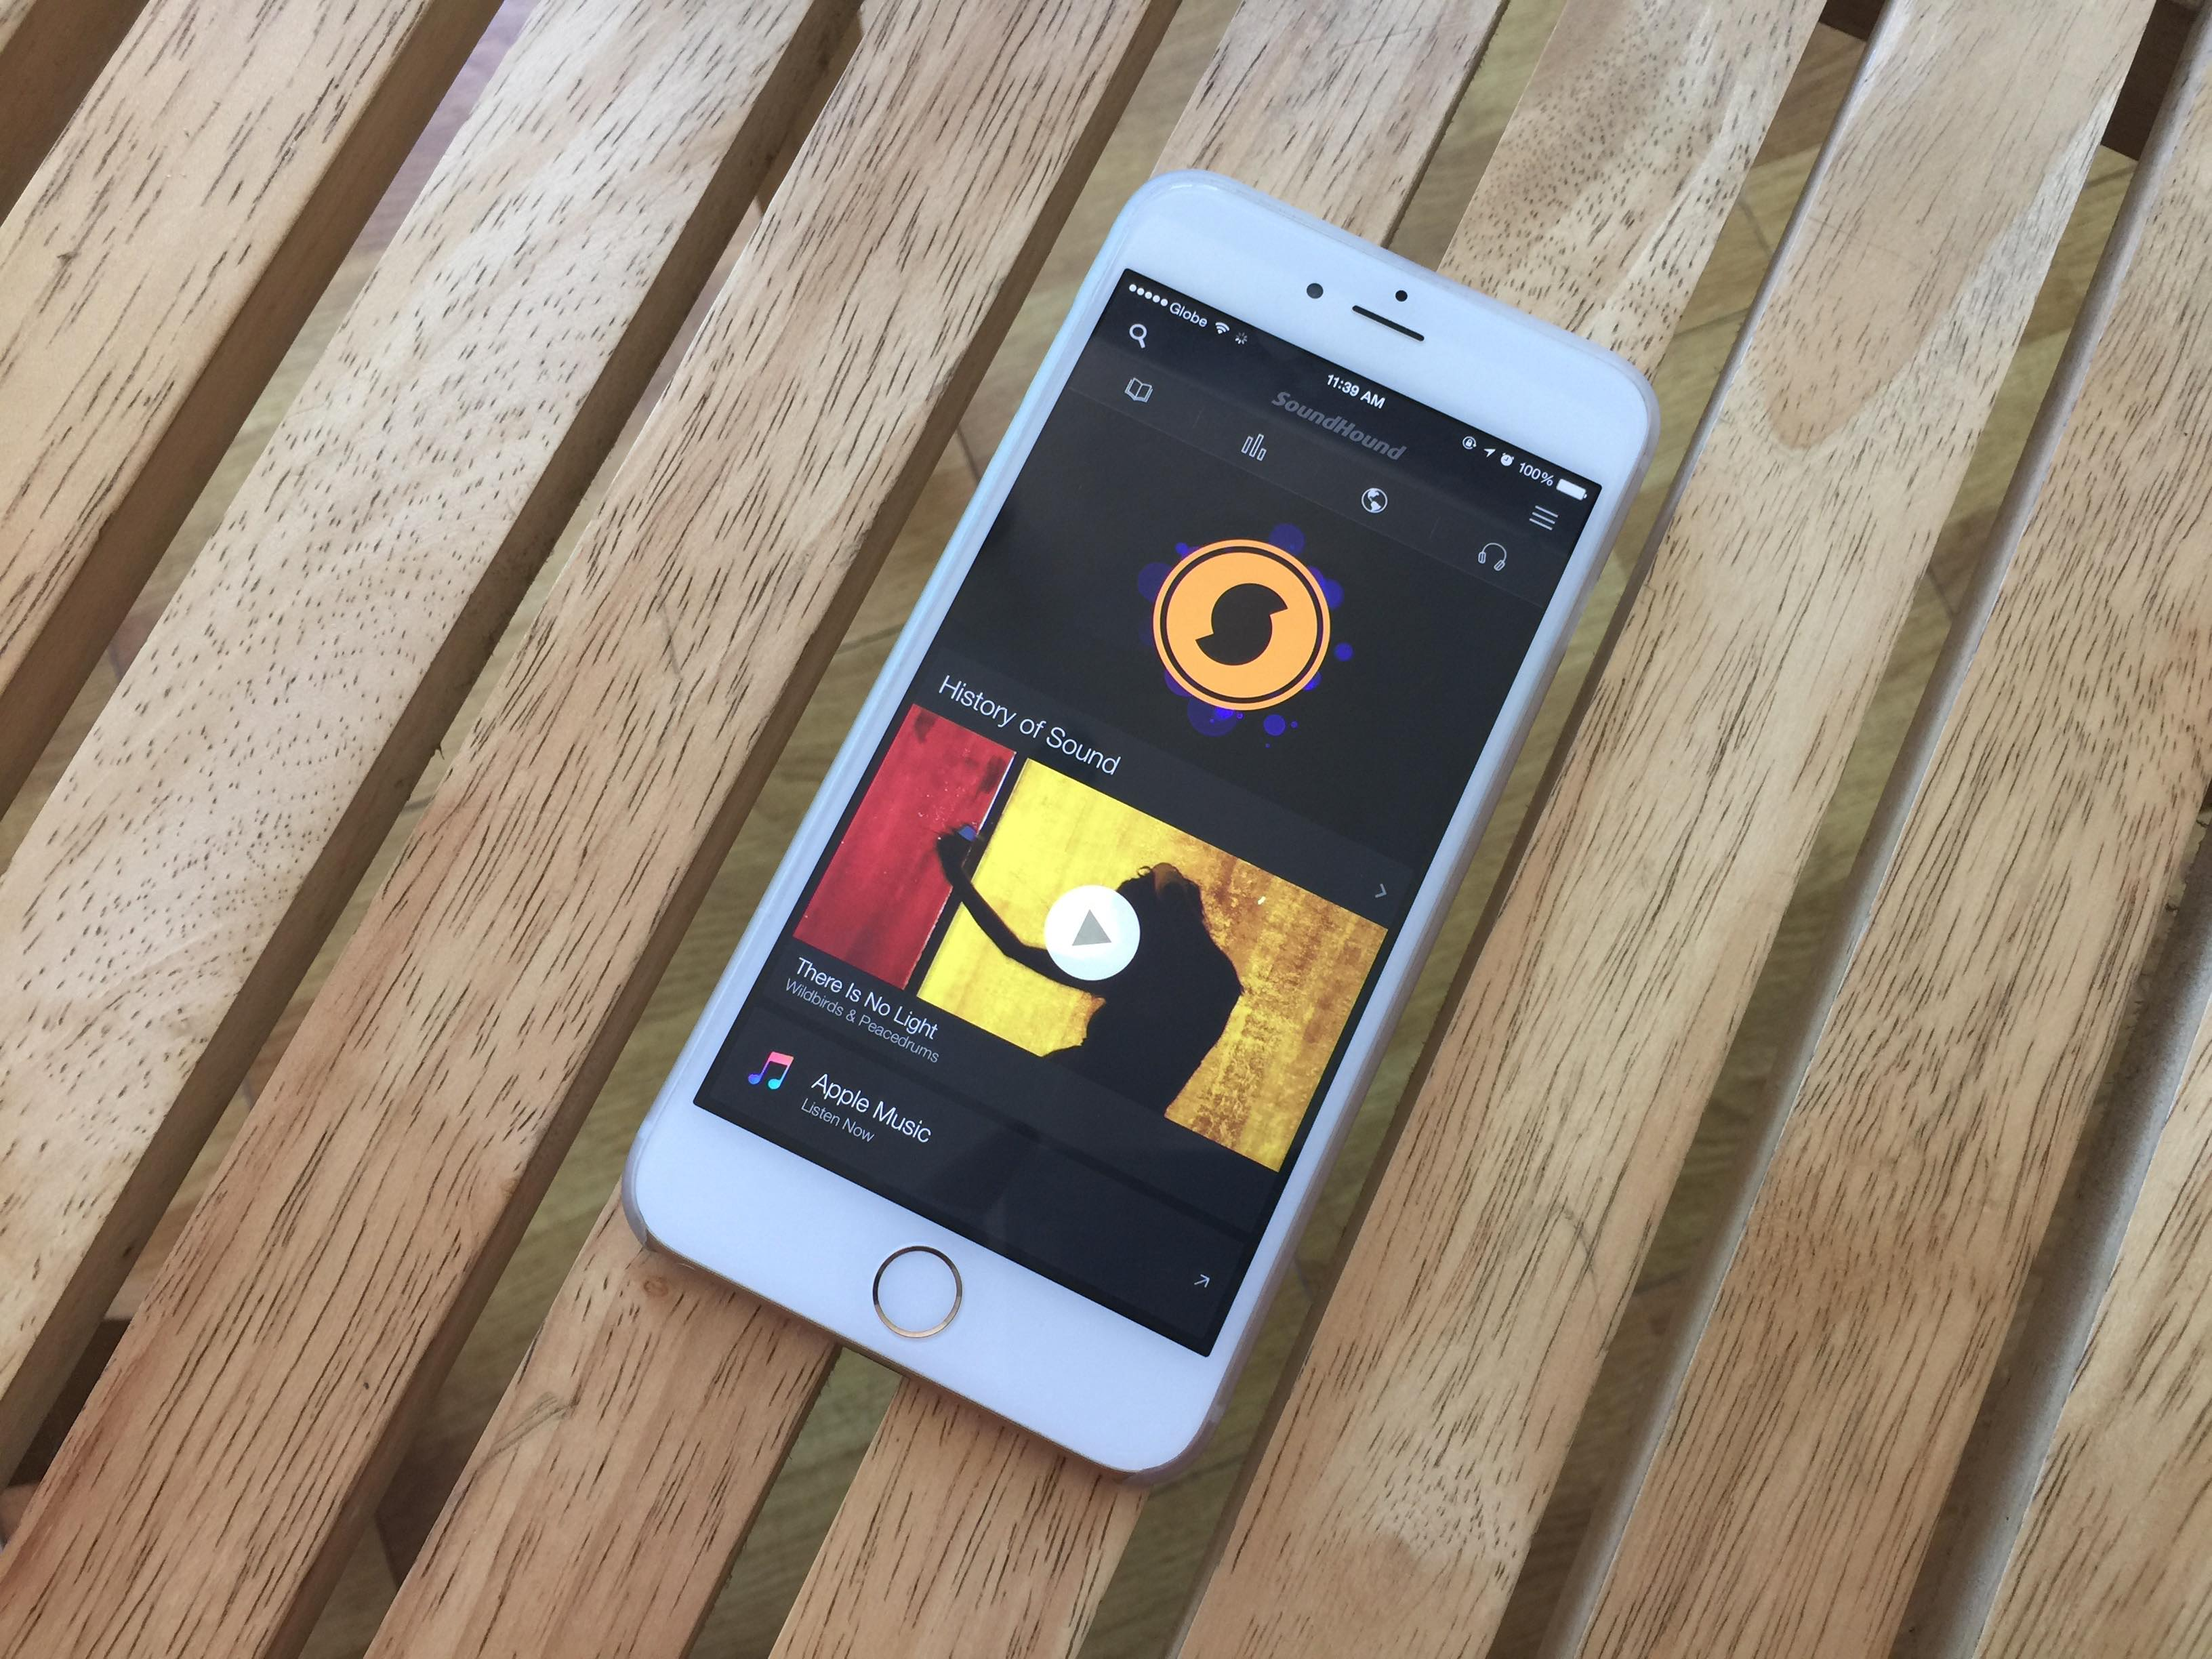 SoundHound matches Shazam with Apple Music integration